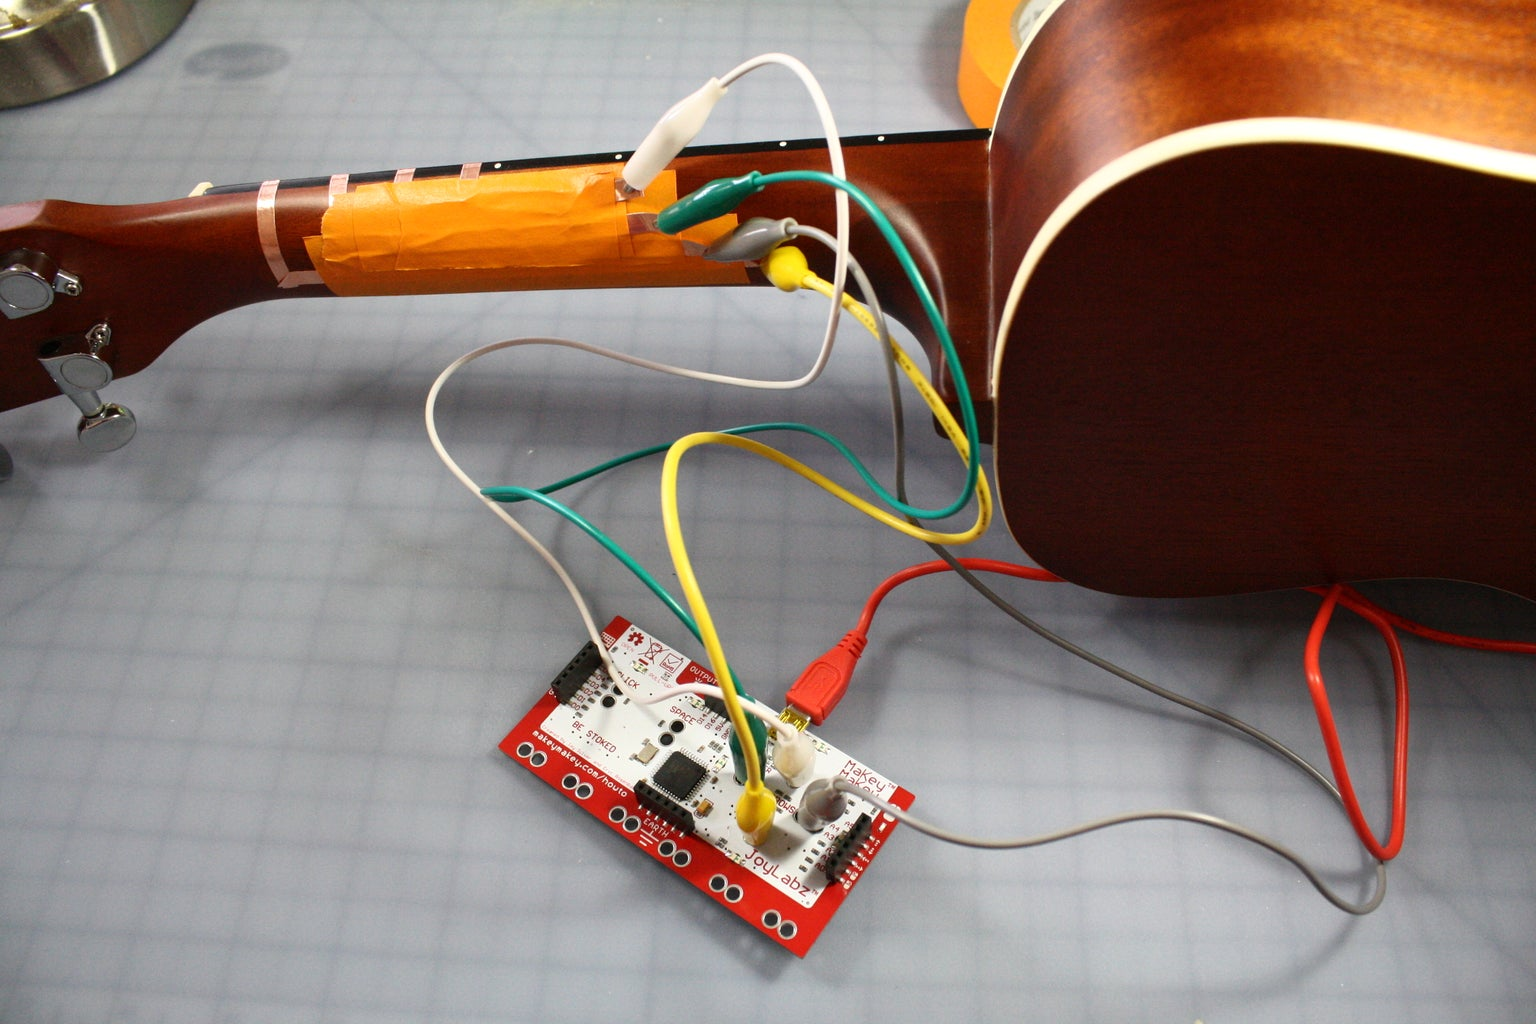 Connecting to the MaKey MaKey